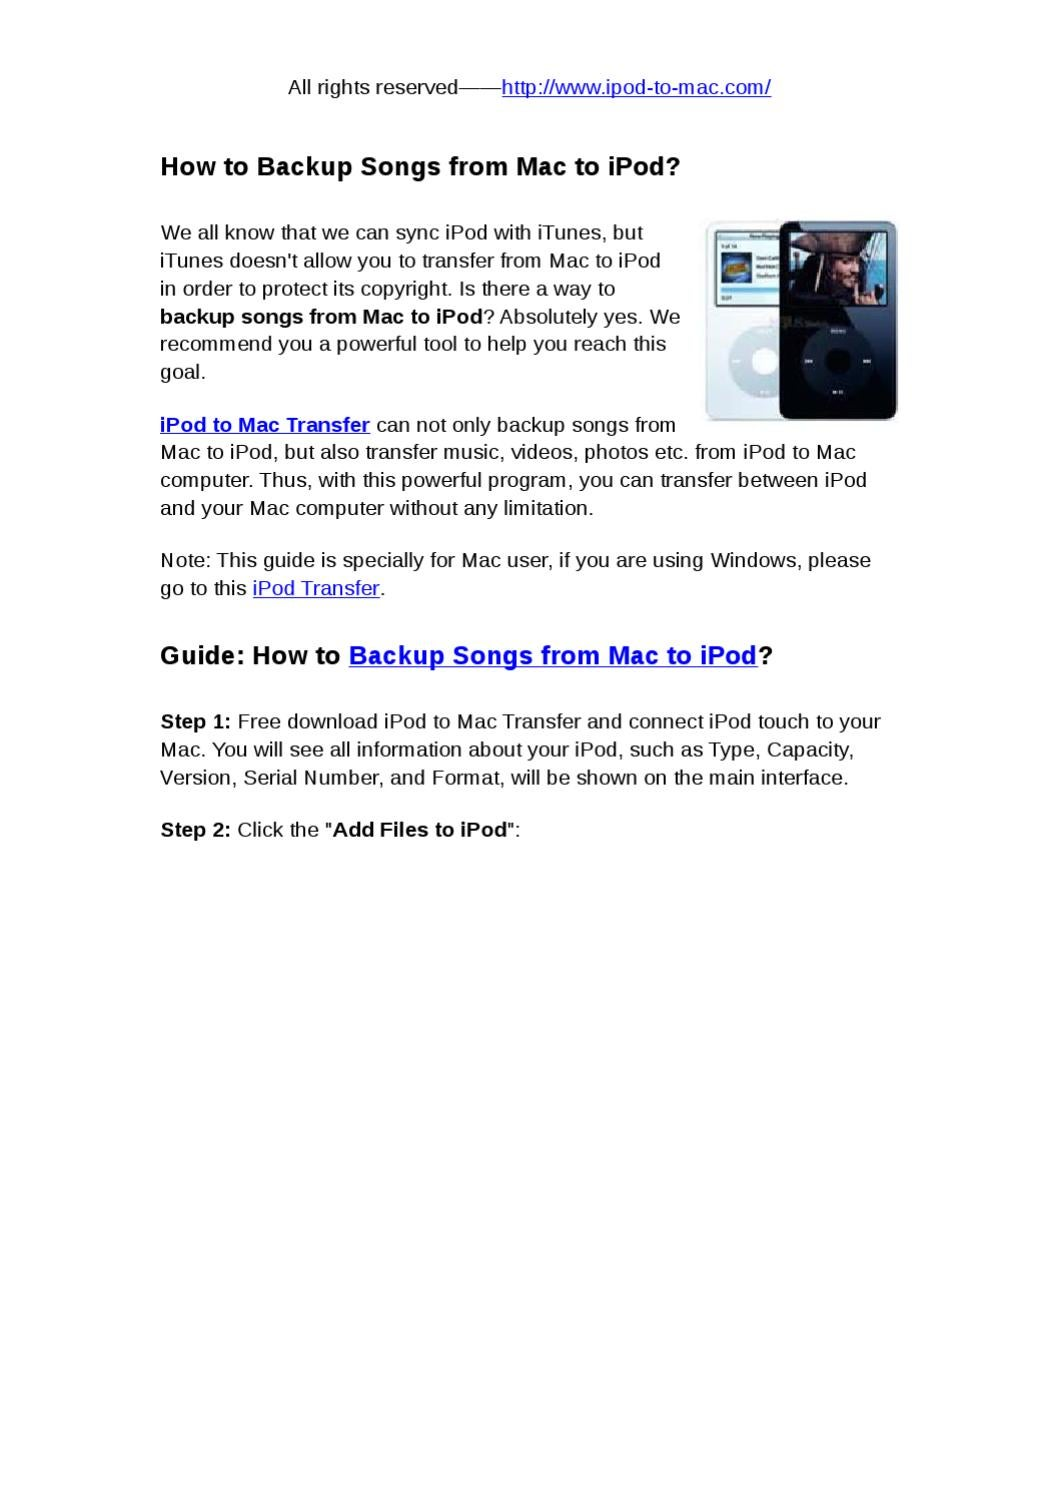 How to Backup Songs from Mac to iPod by snow abcd - issuu